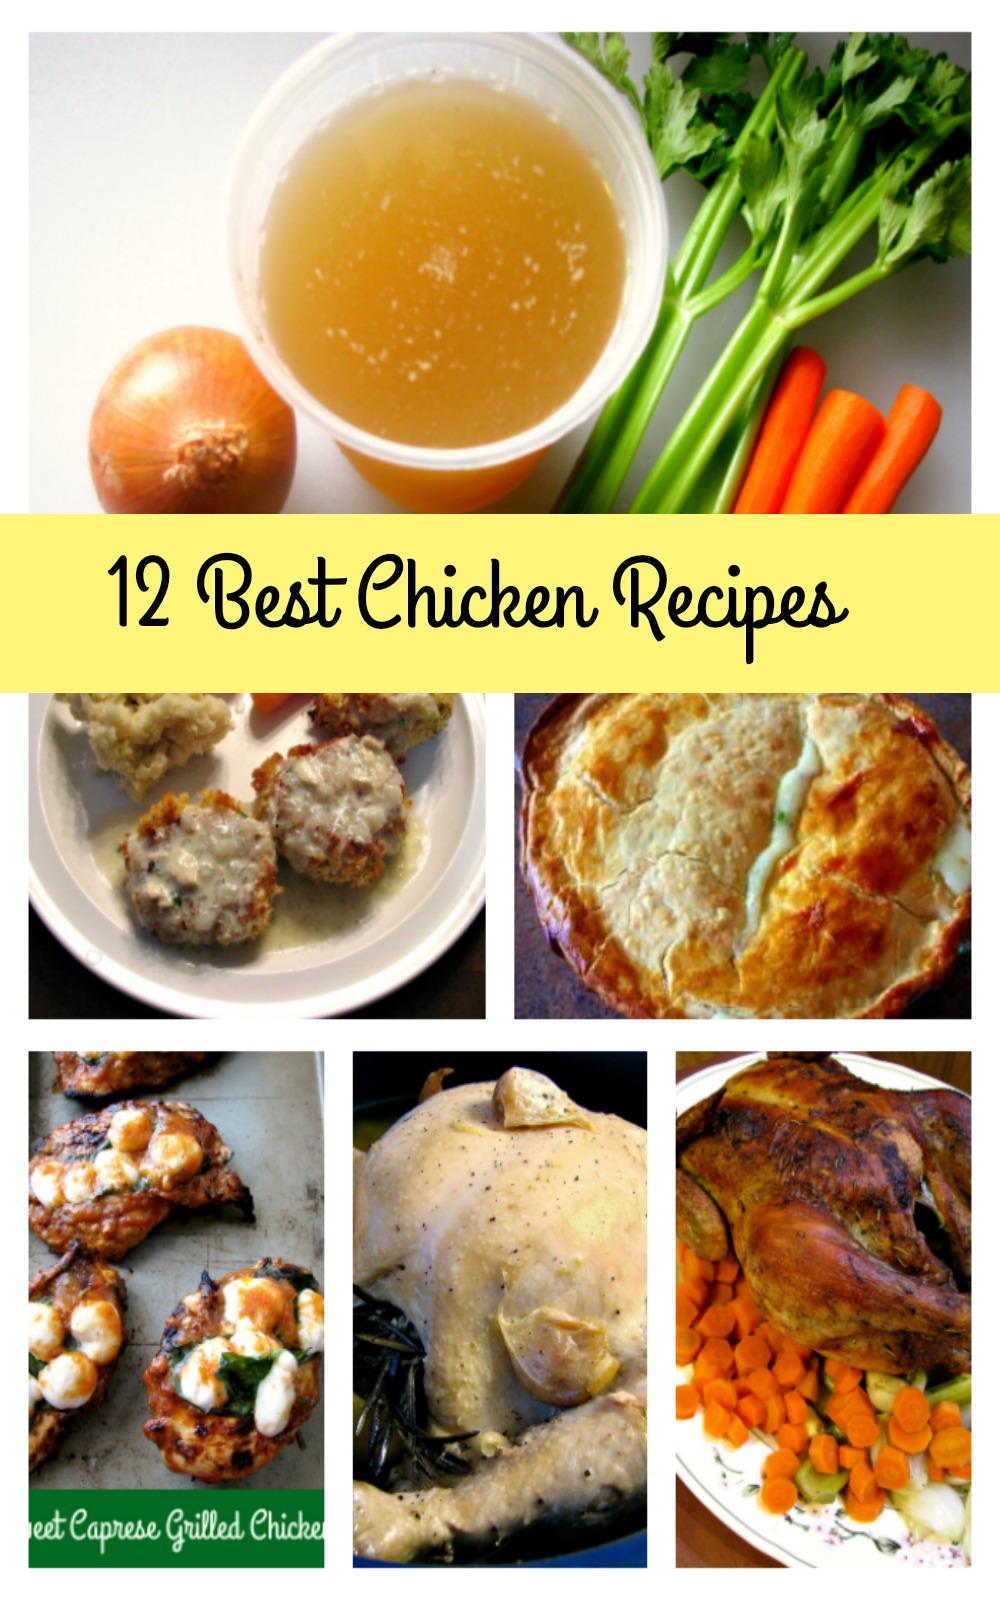 Chicken is often the first choice for dinner, but can get boring if you don't change it up. Today I'm sharing some of the Best Chicken Recipes I love!